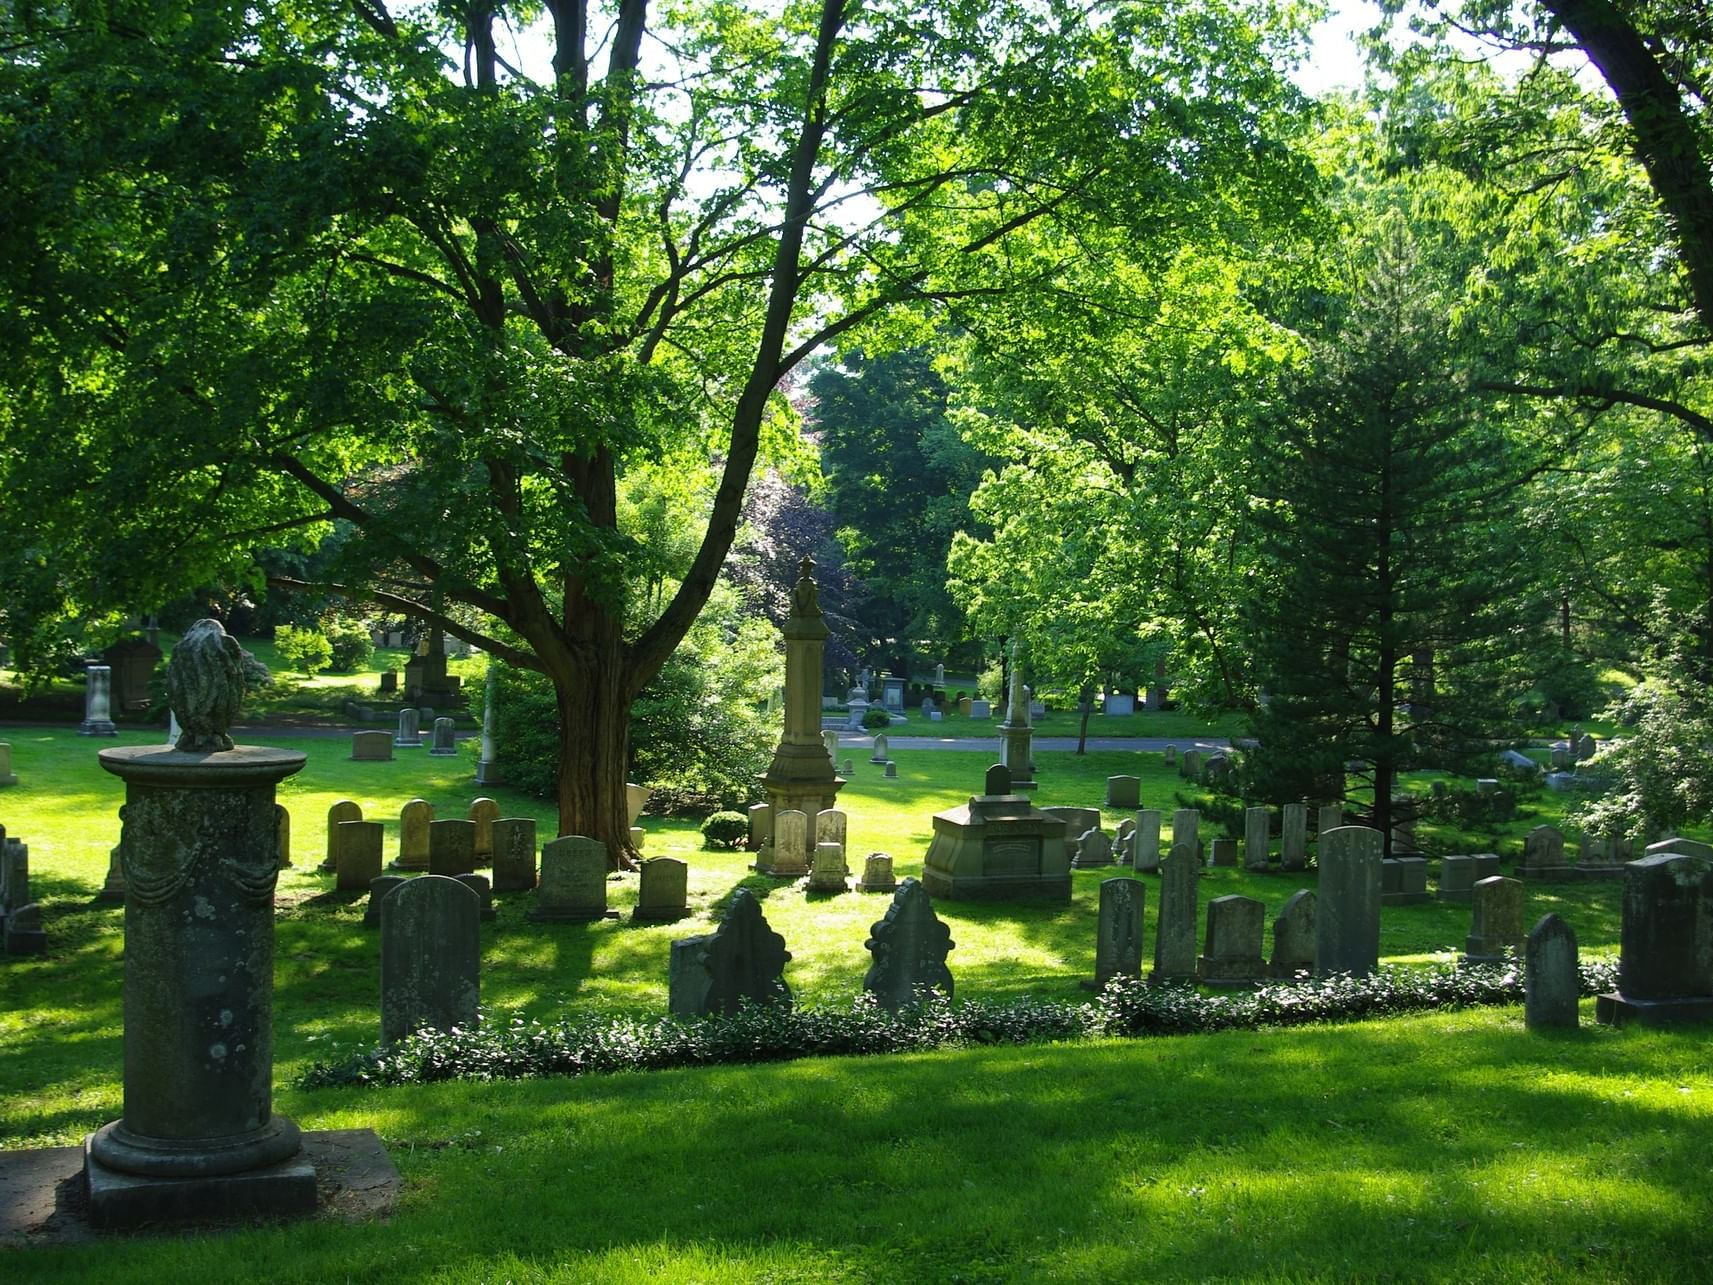 headstones in a cemetery